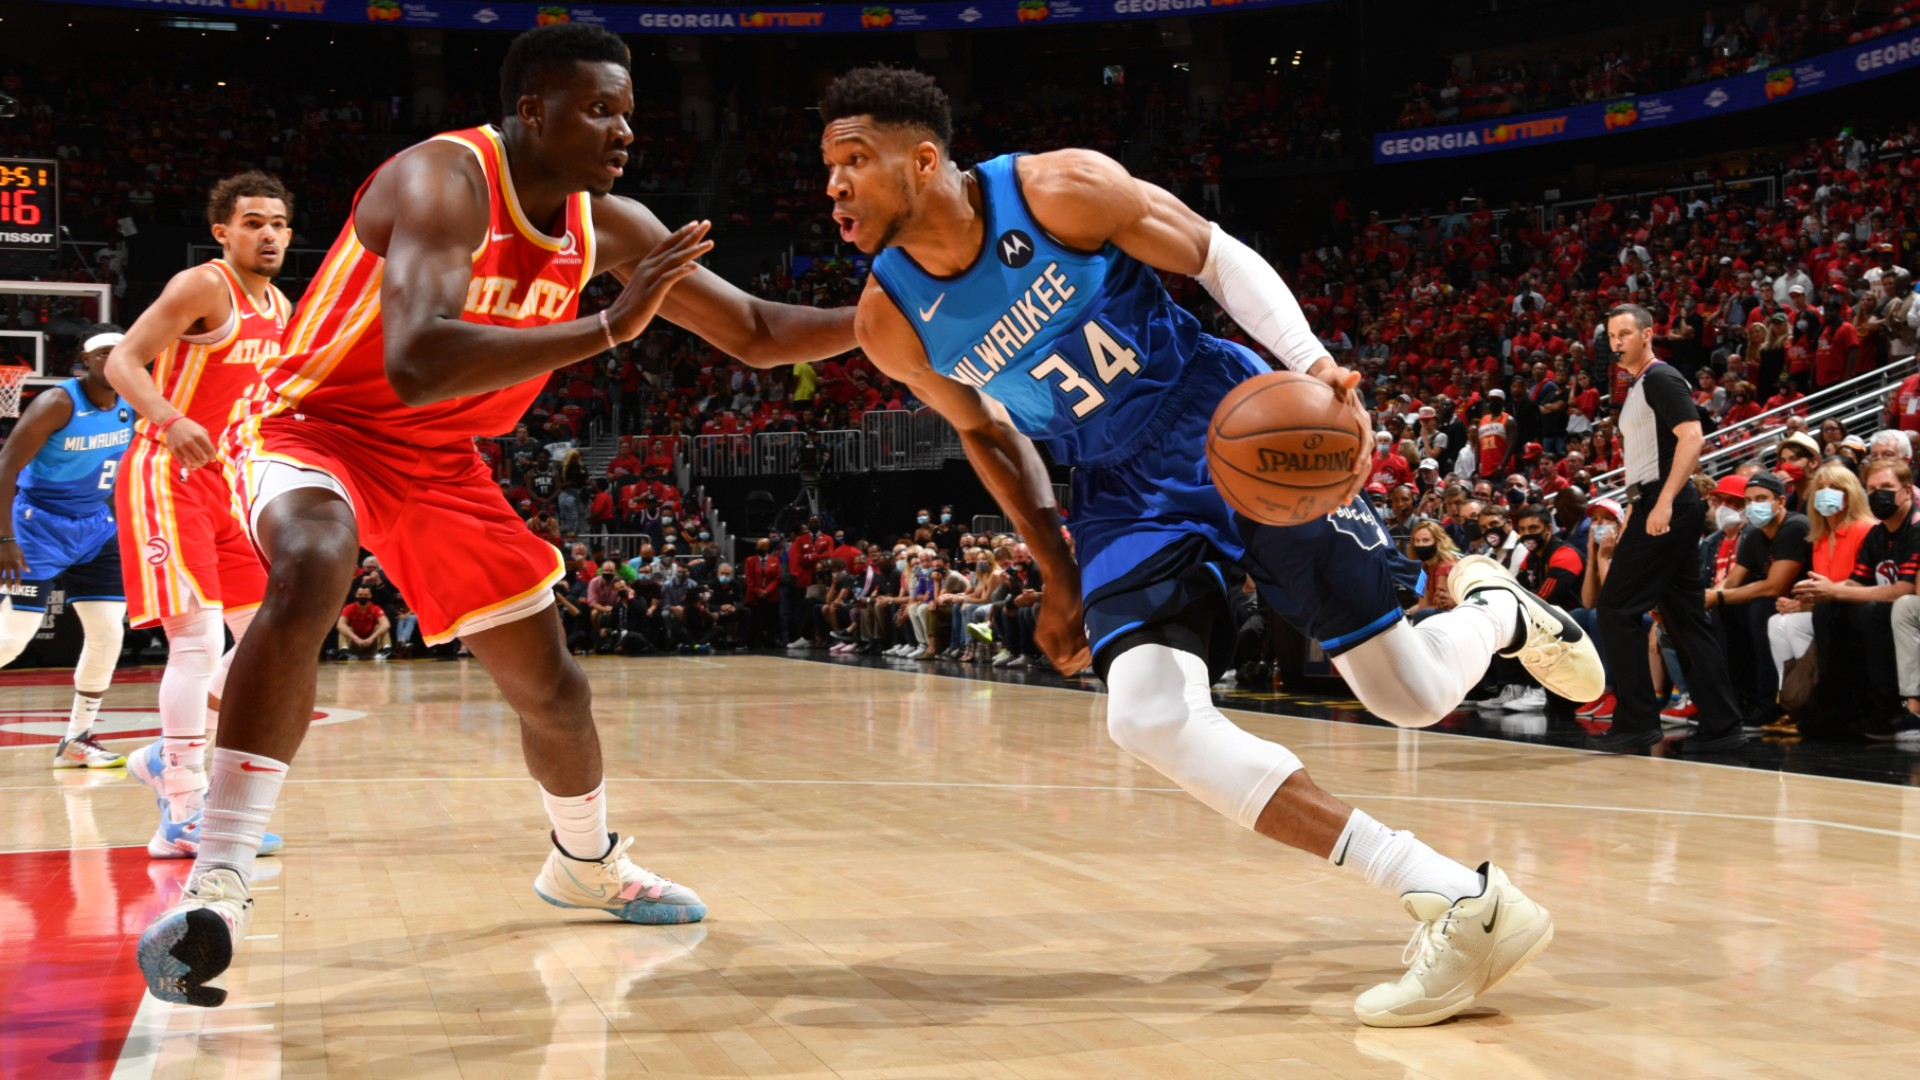 Nba Playoffs 2021 Giannis And Middleton Take Down Young S Hawks As Bucks Seize 2 1 Lead Stadium Astro